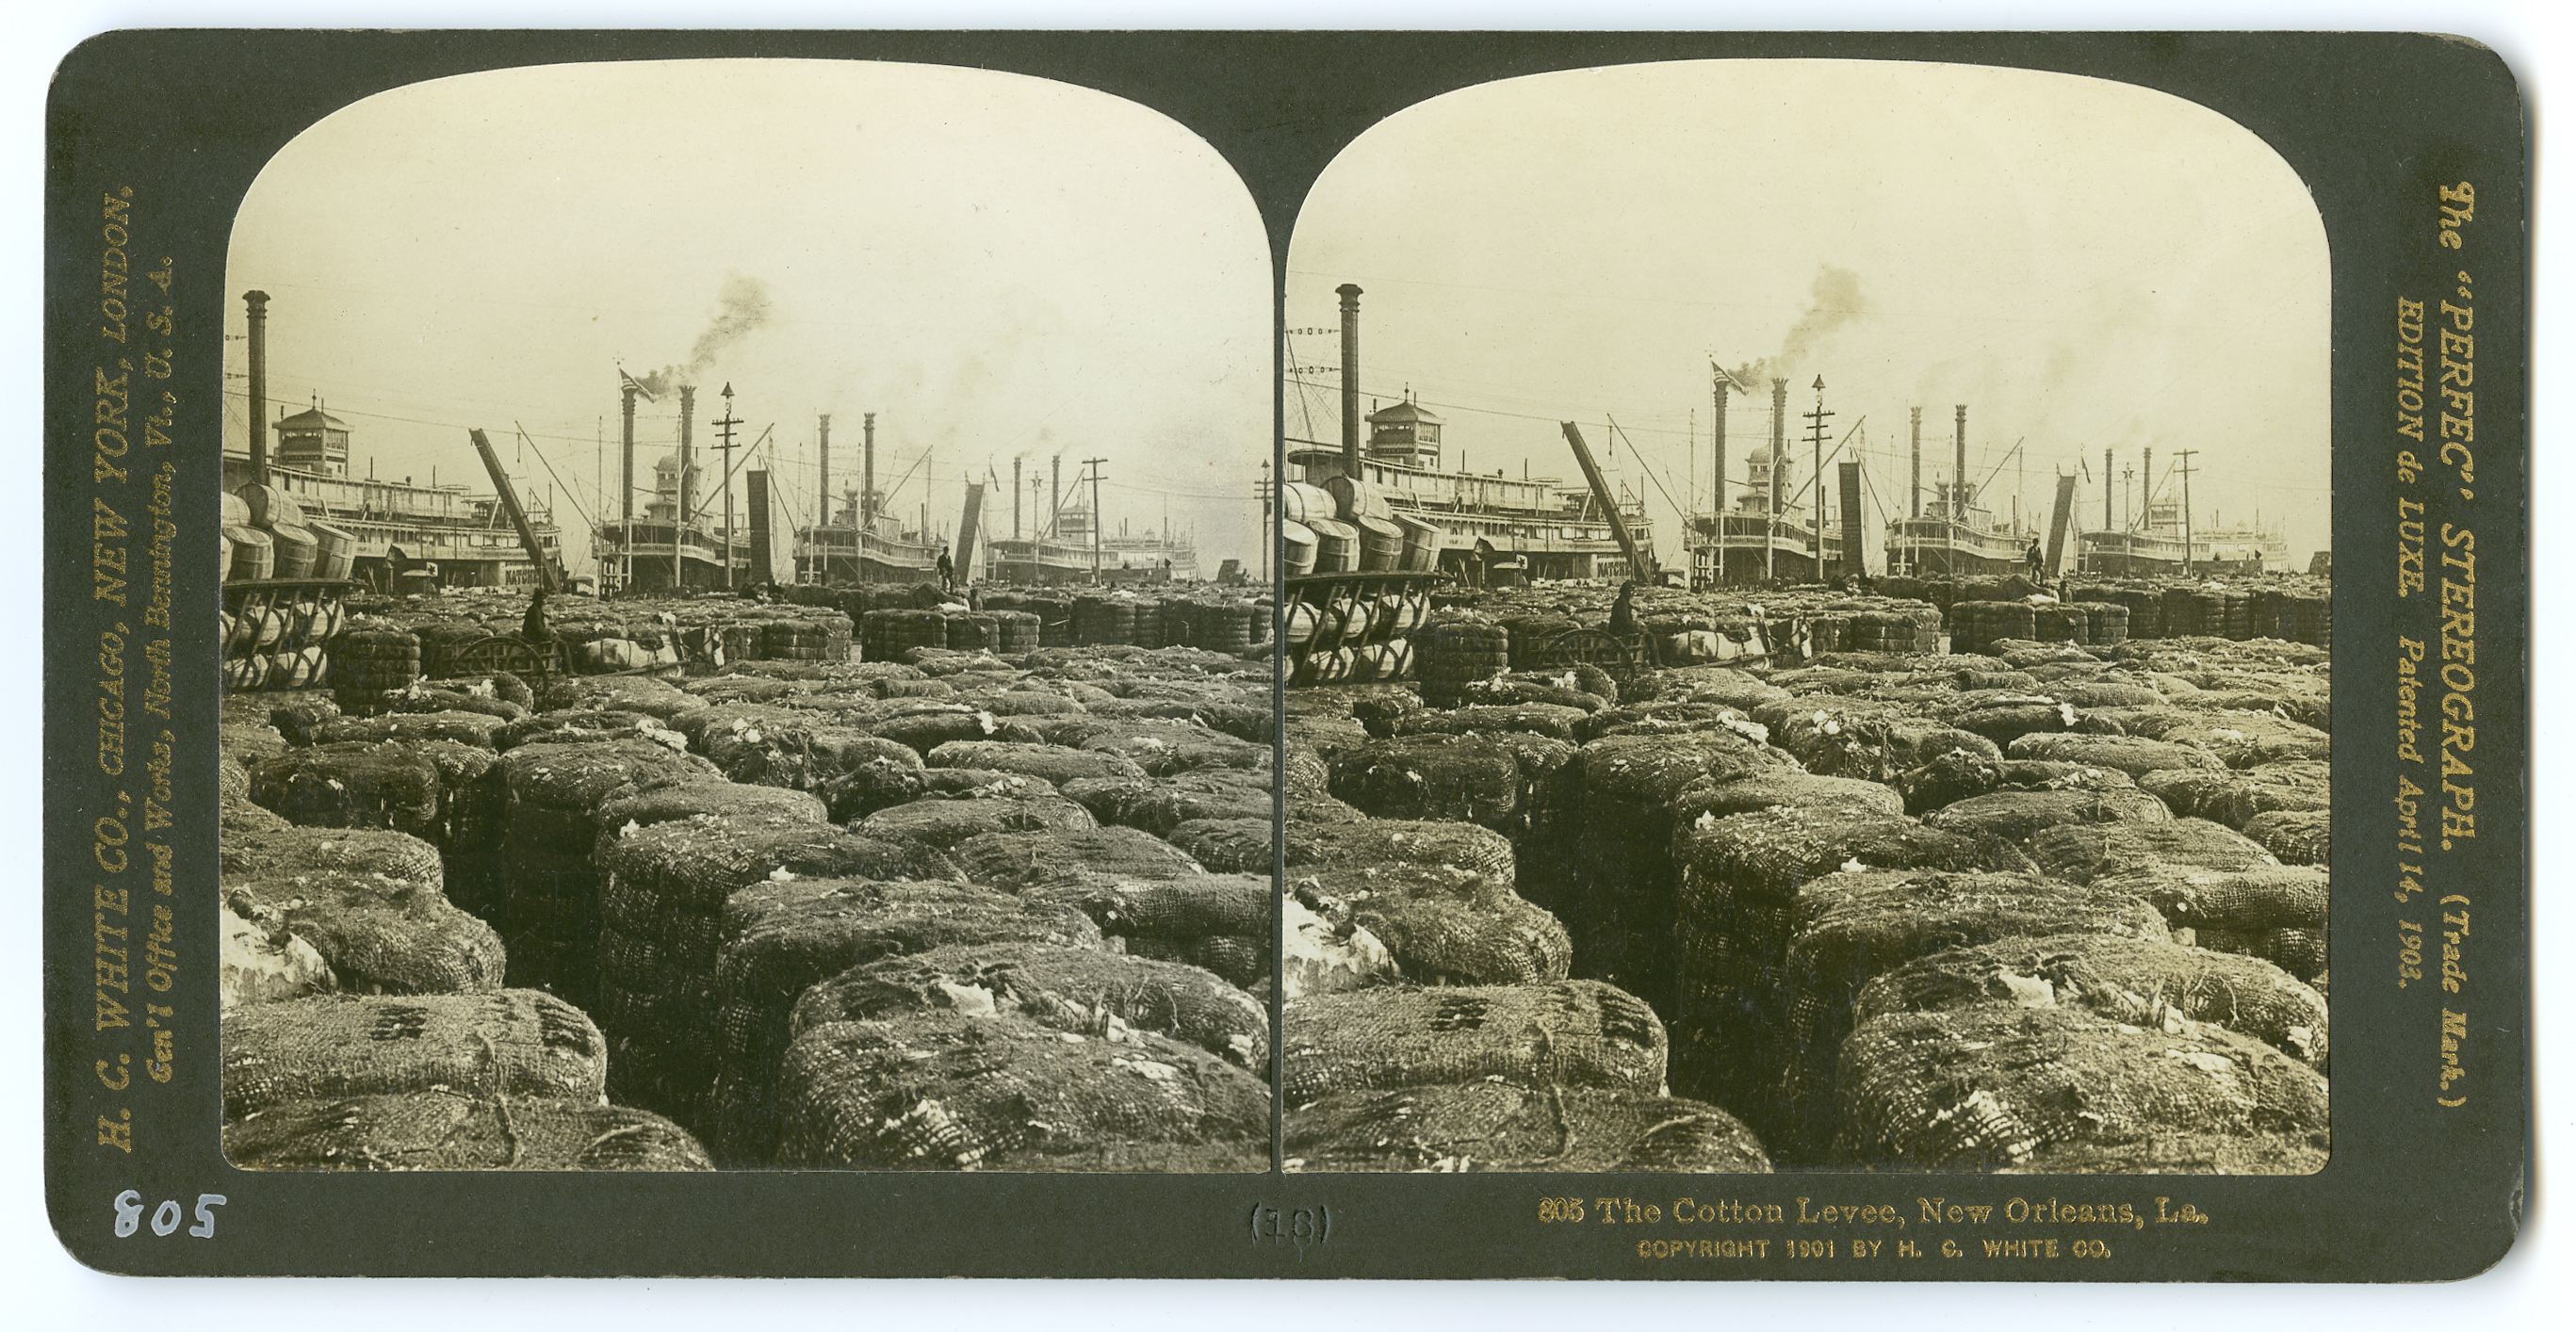 805 The Cotton Levee, New Orleans, LA., 1901